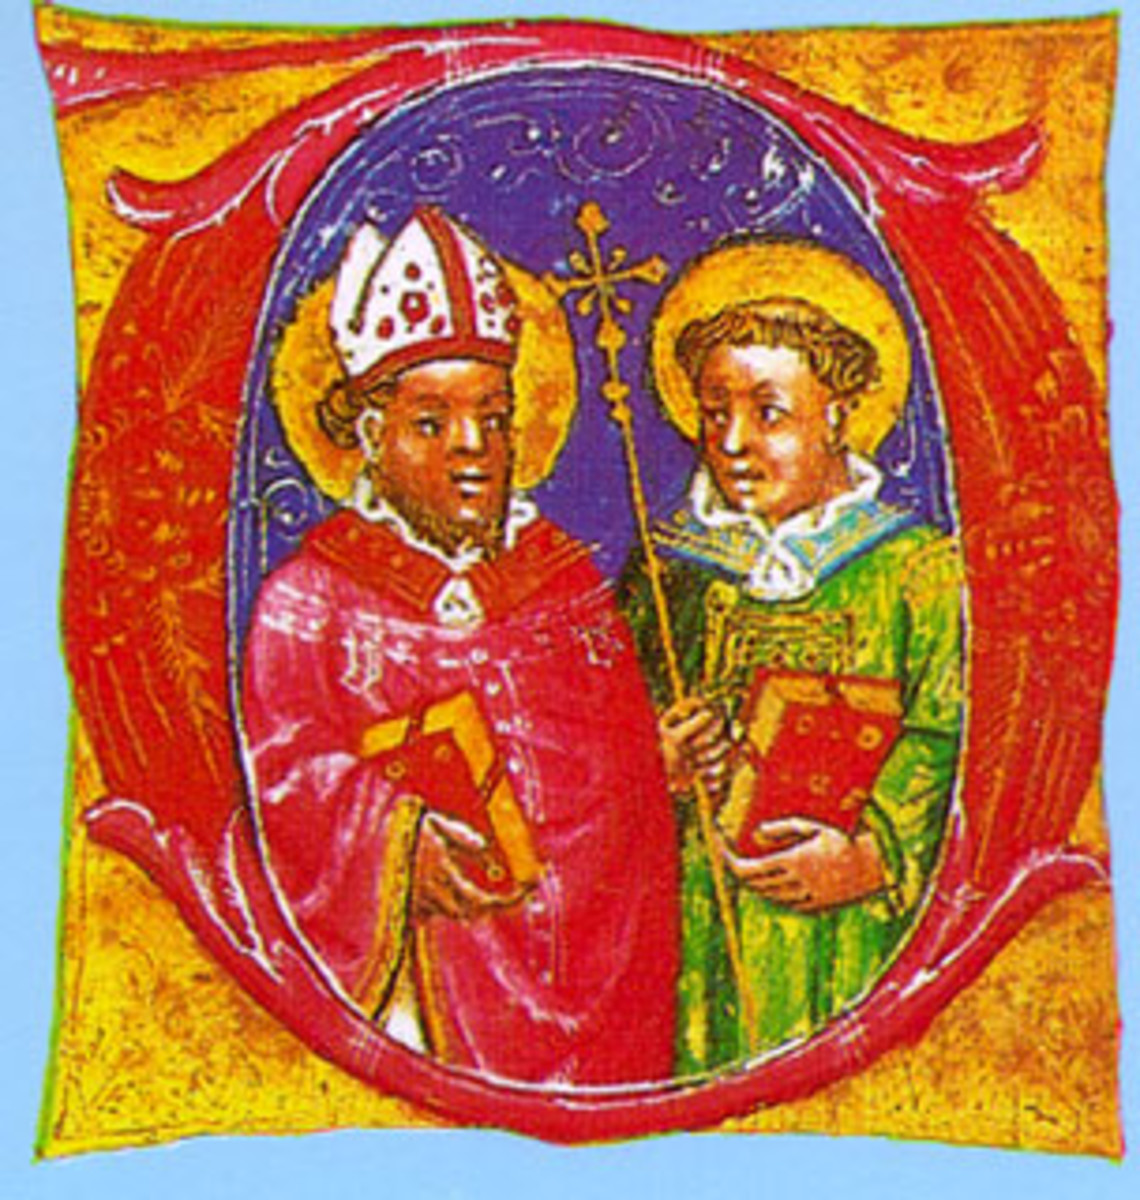 Hermagoras and Fortunatus - Church Icon from the Middle Ages